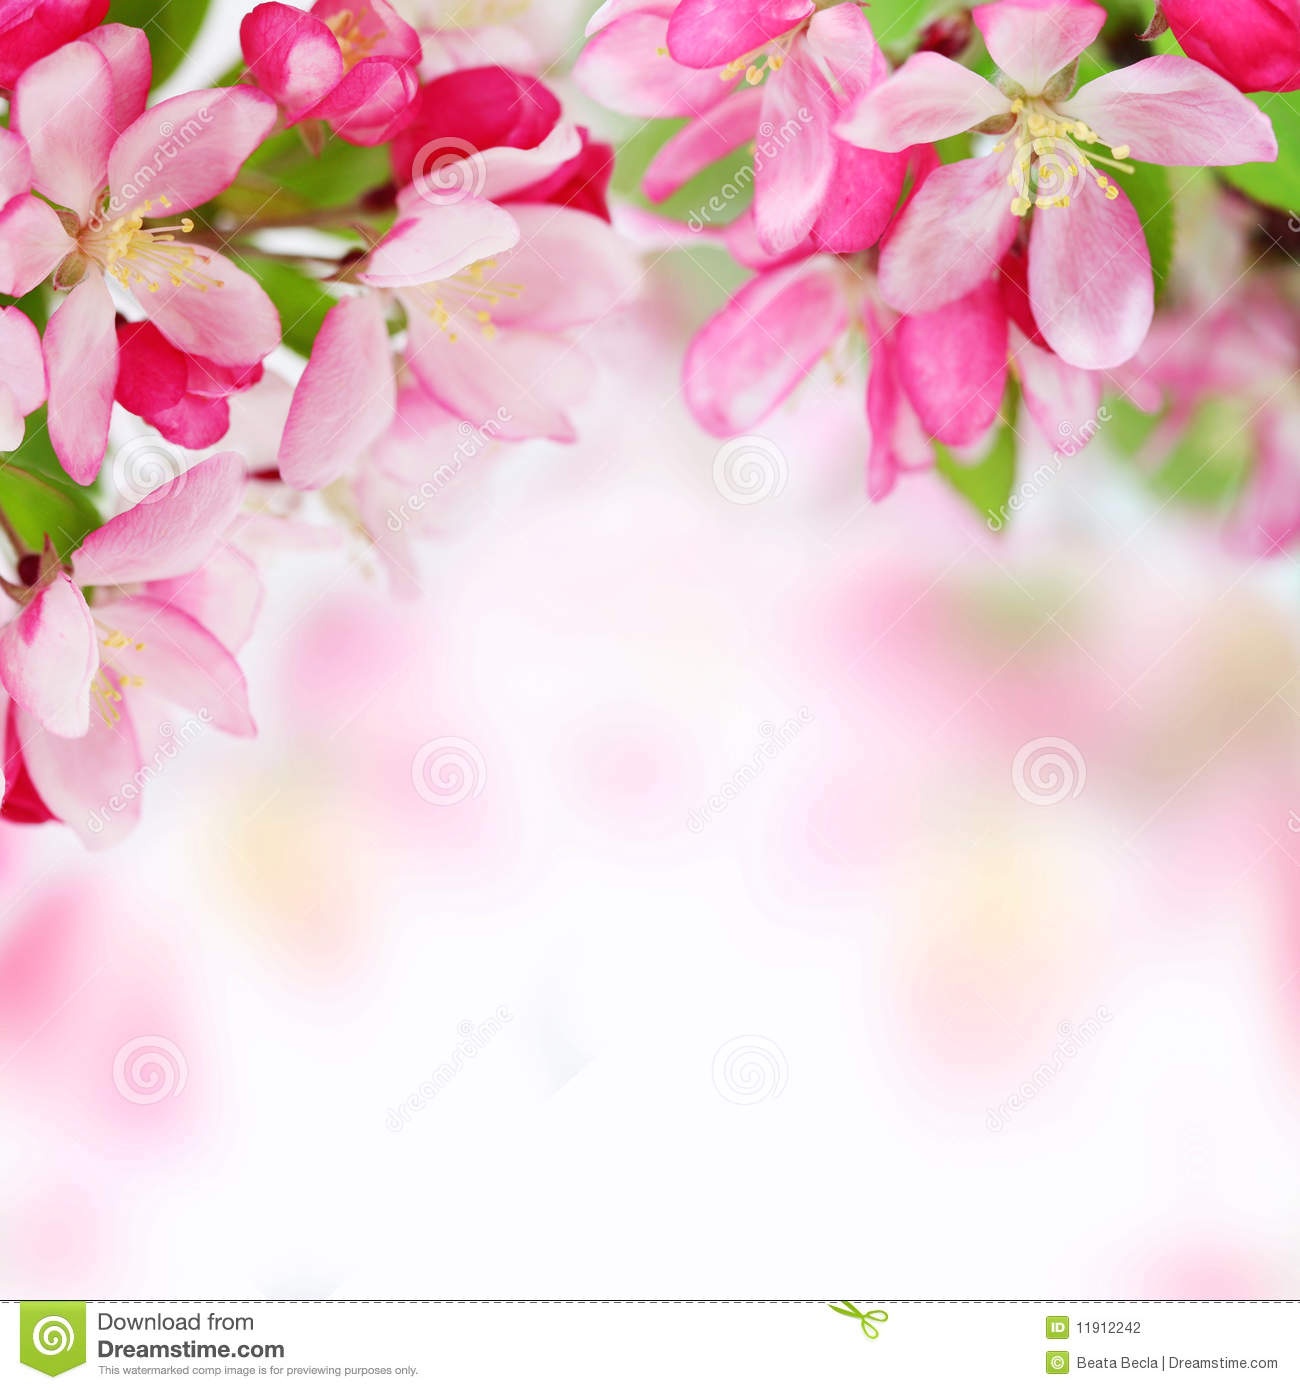 Background Pictures Of Flowers apple flowers background